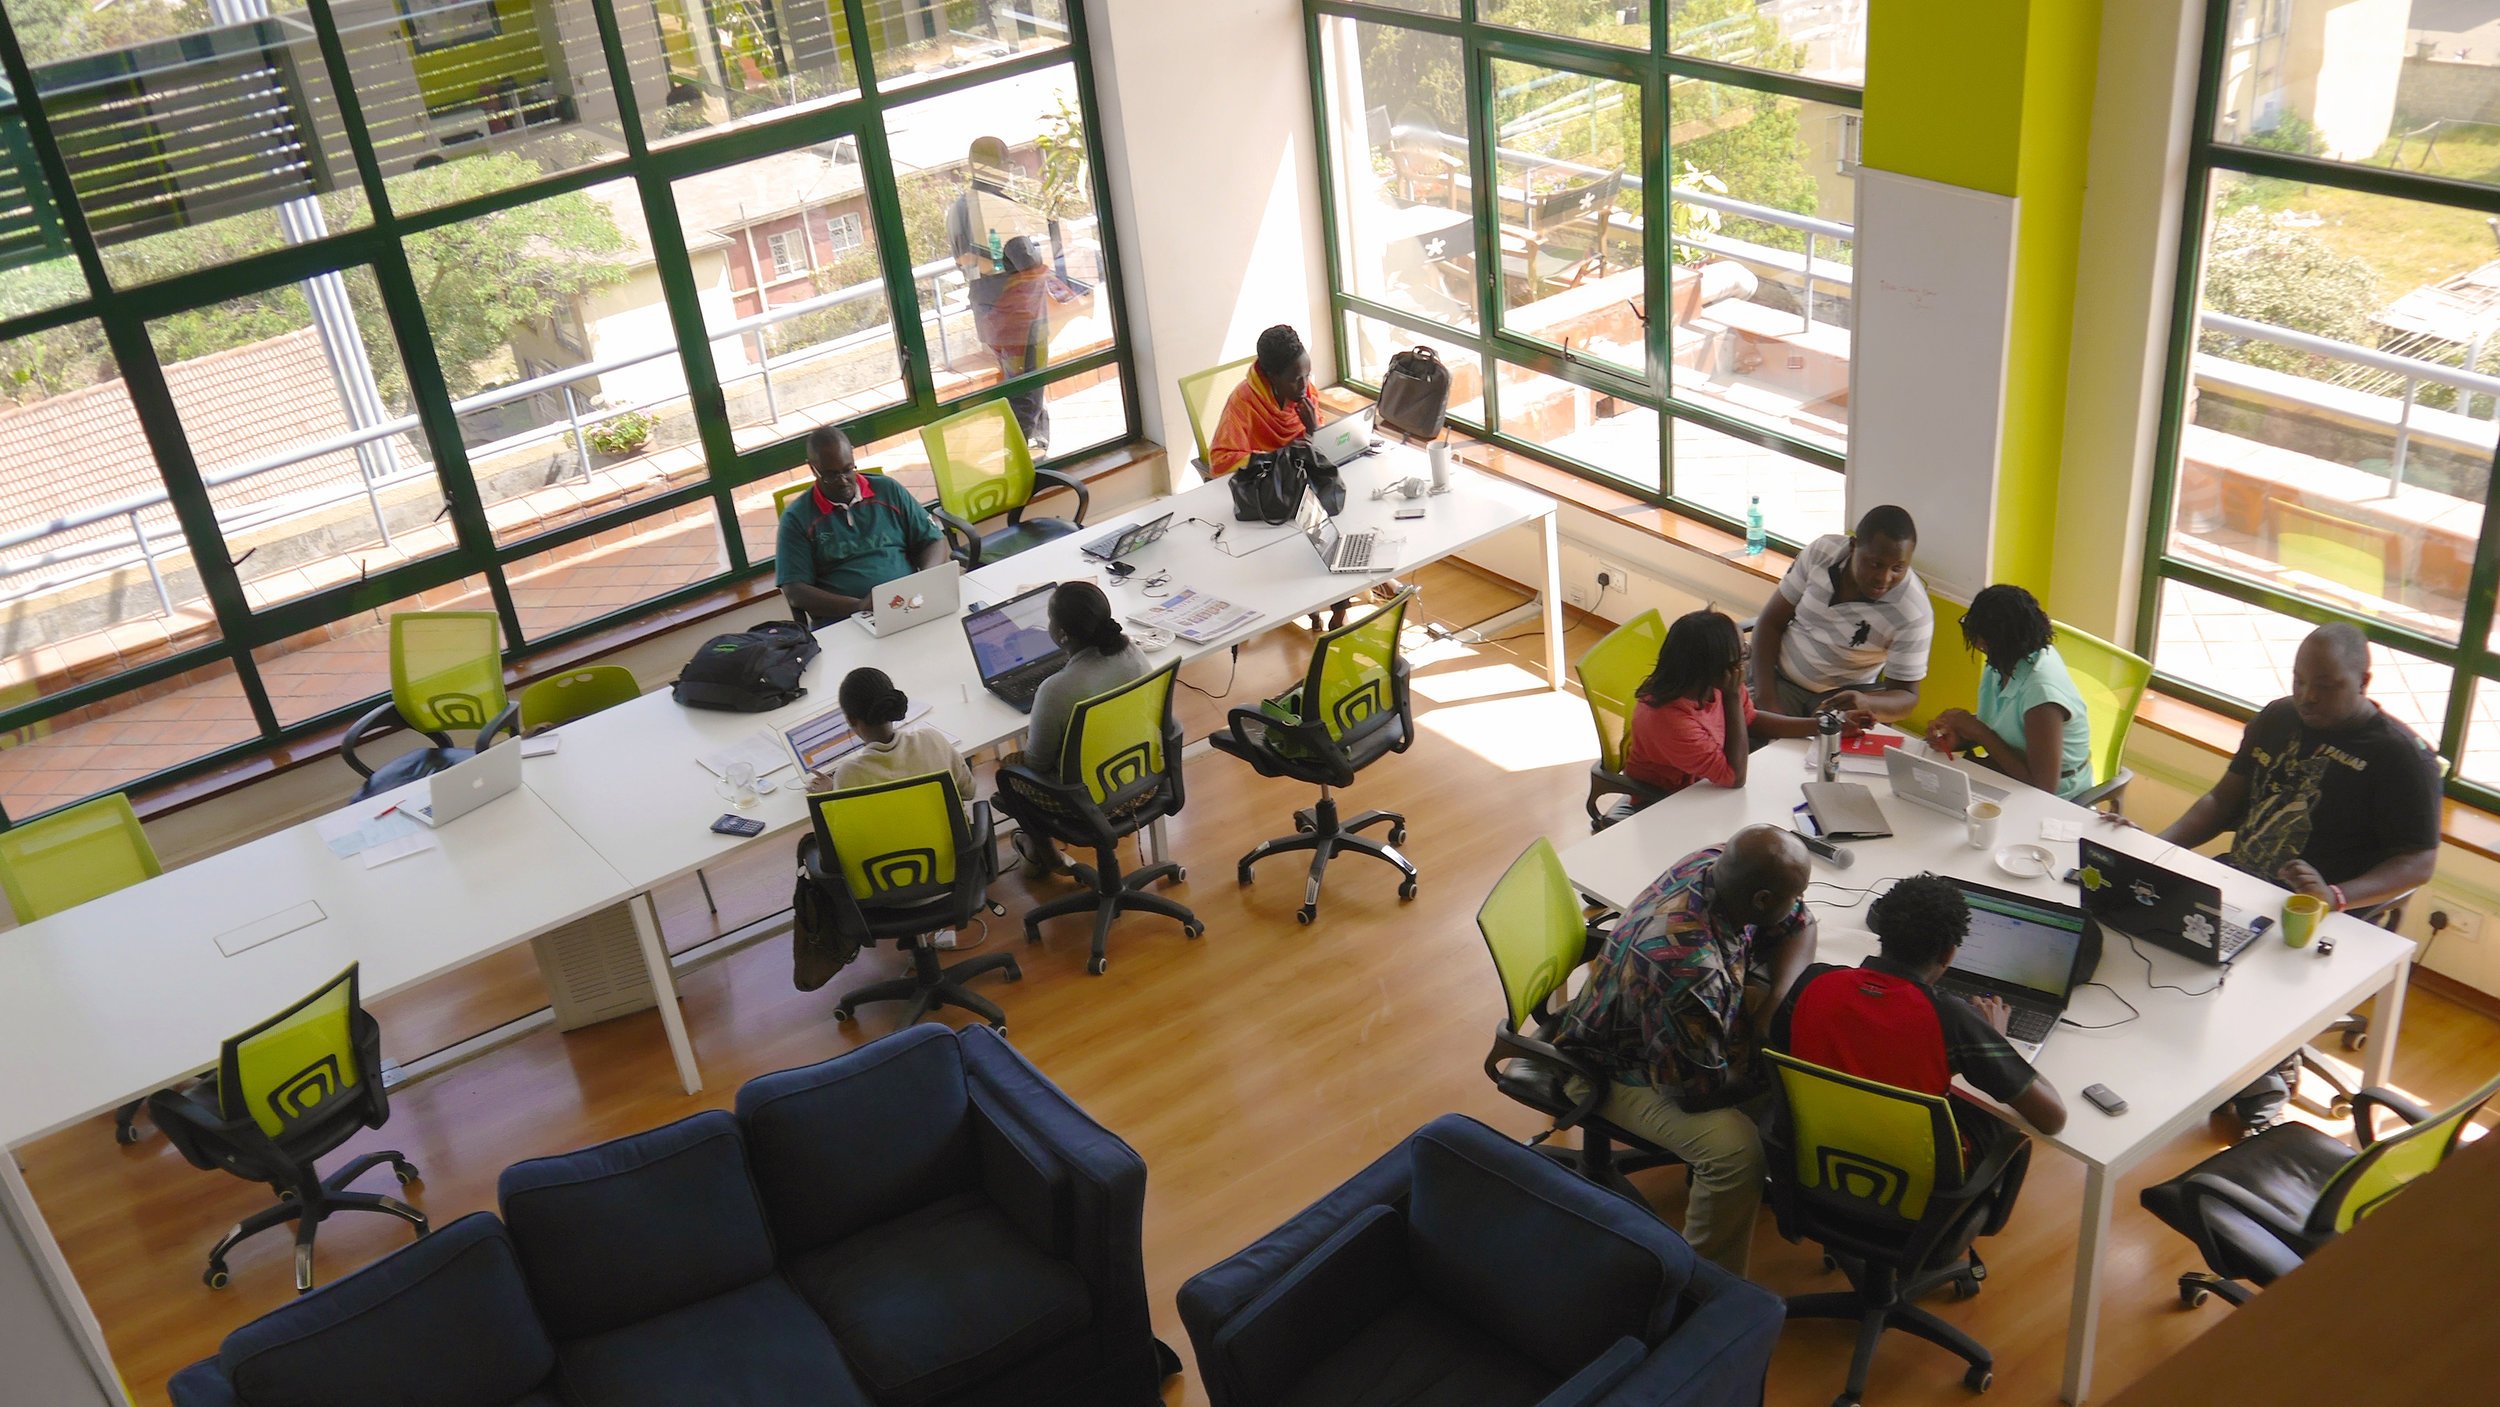 A tech start-up co-working space in nairobi. Photo: rvdw images /shutterstock